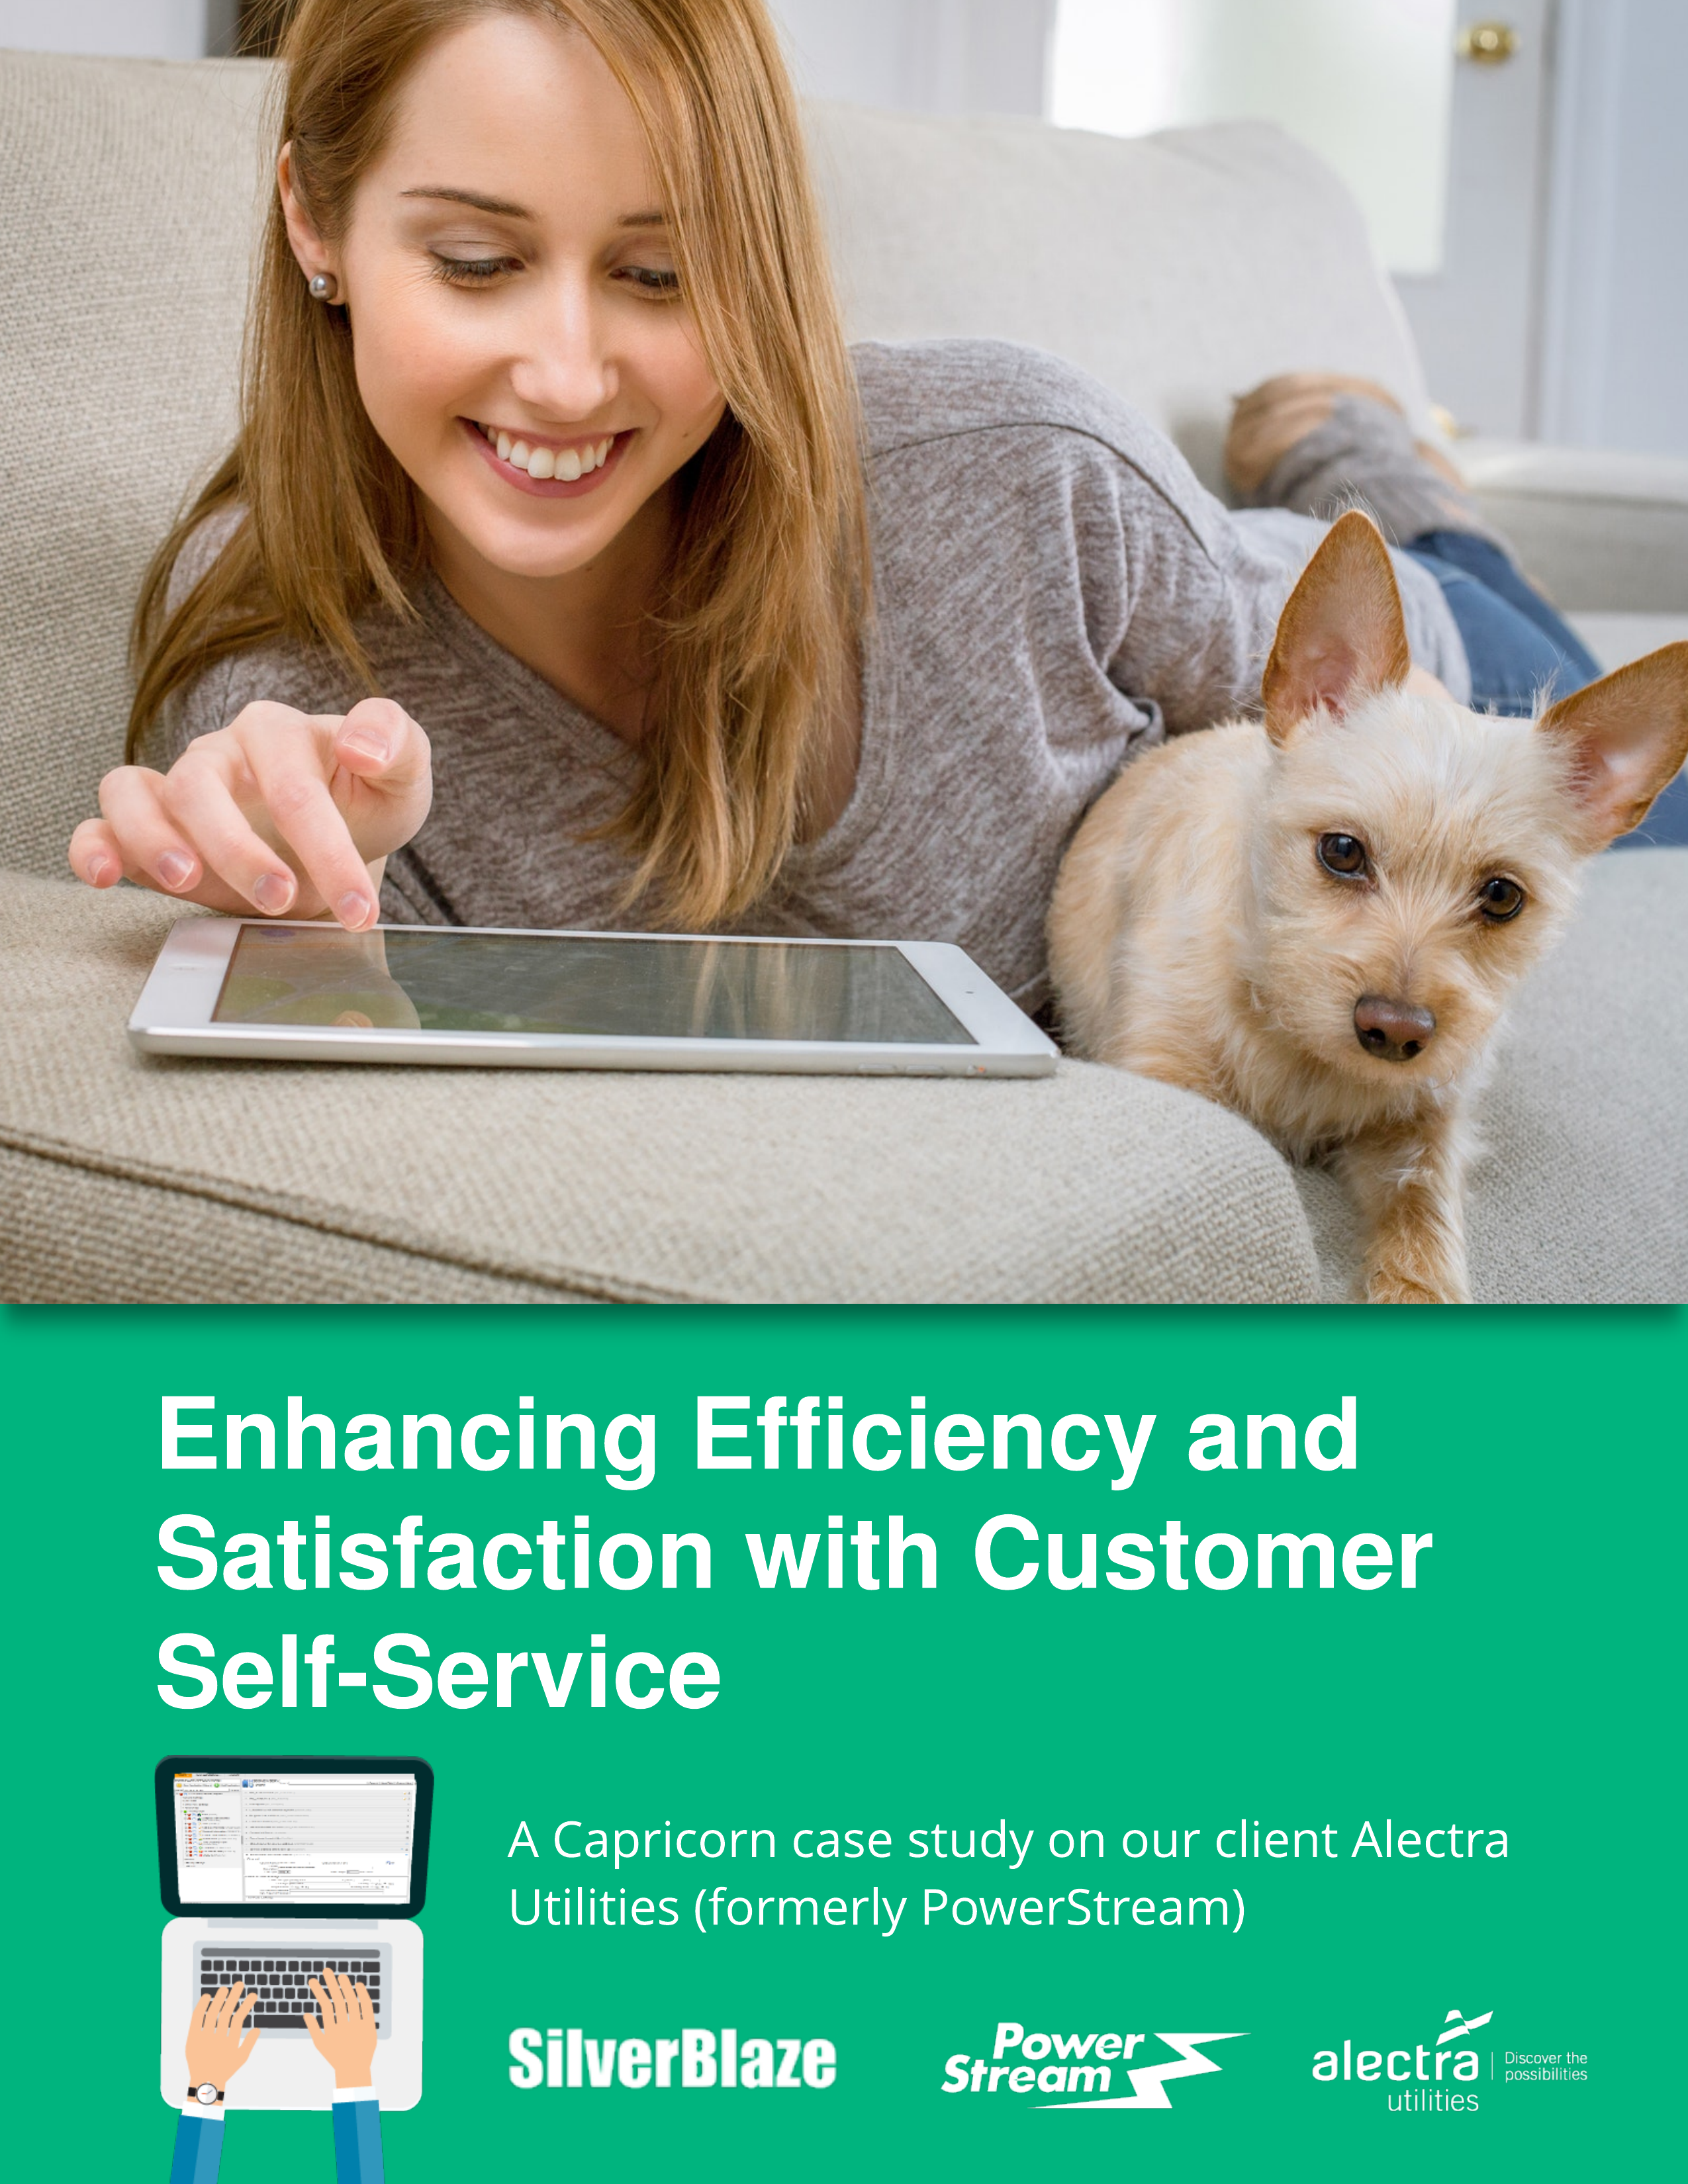 PowerStream: Enhancing Efficiency and Satisfaction with Customer Self-Service